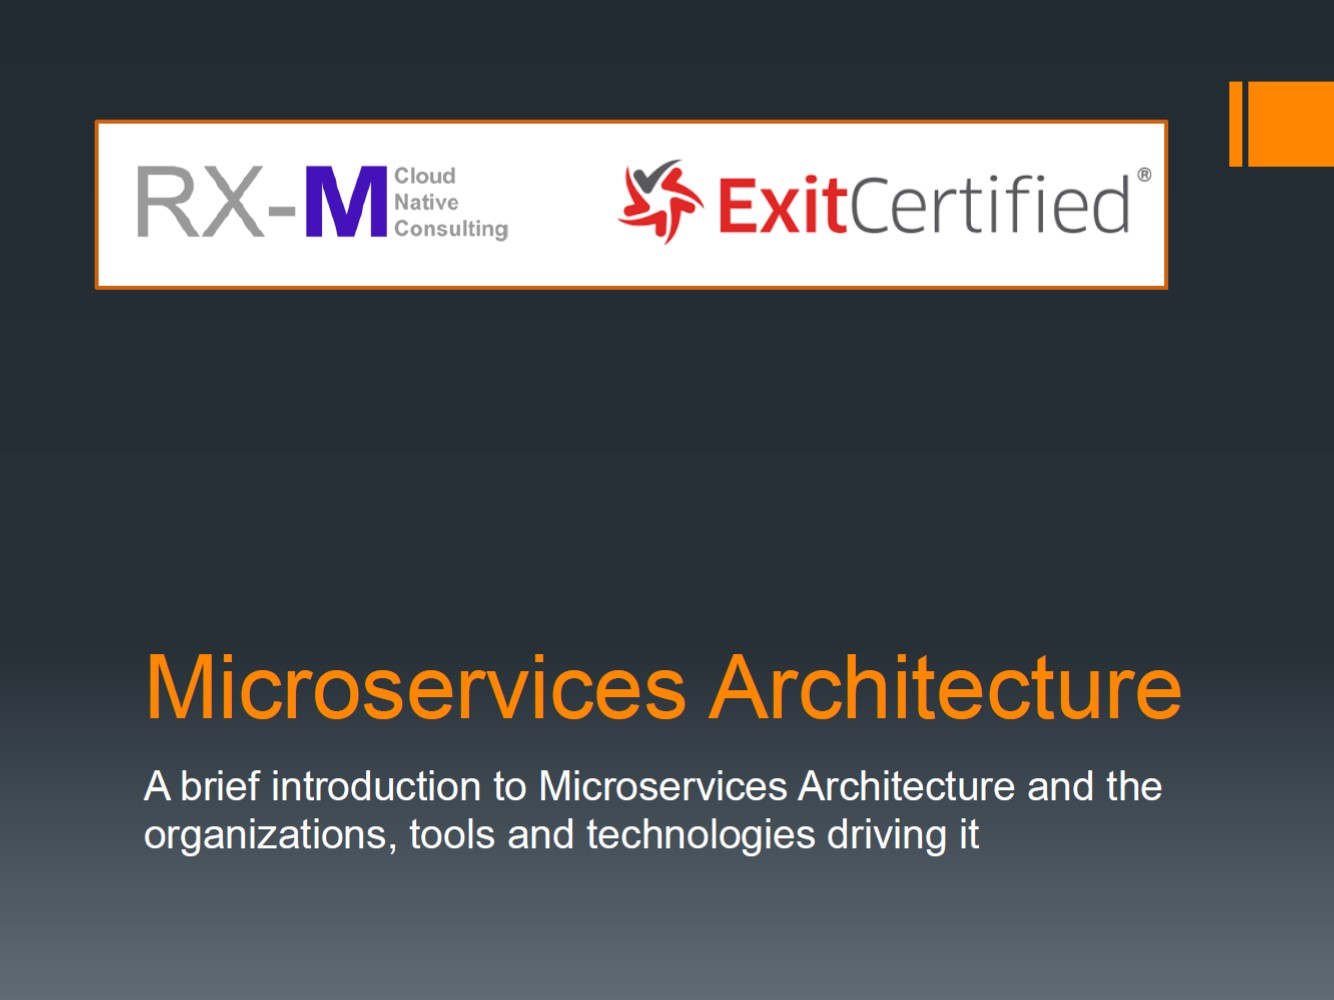 RX-M and ExitCertified - Microservices Architecture